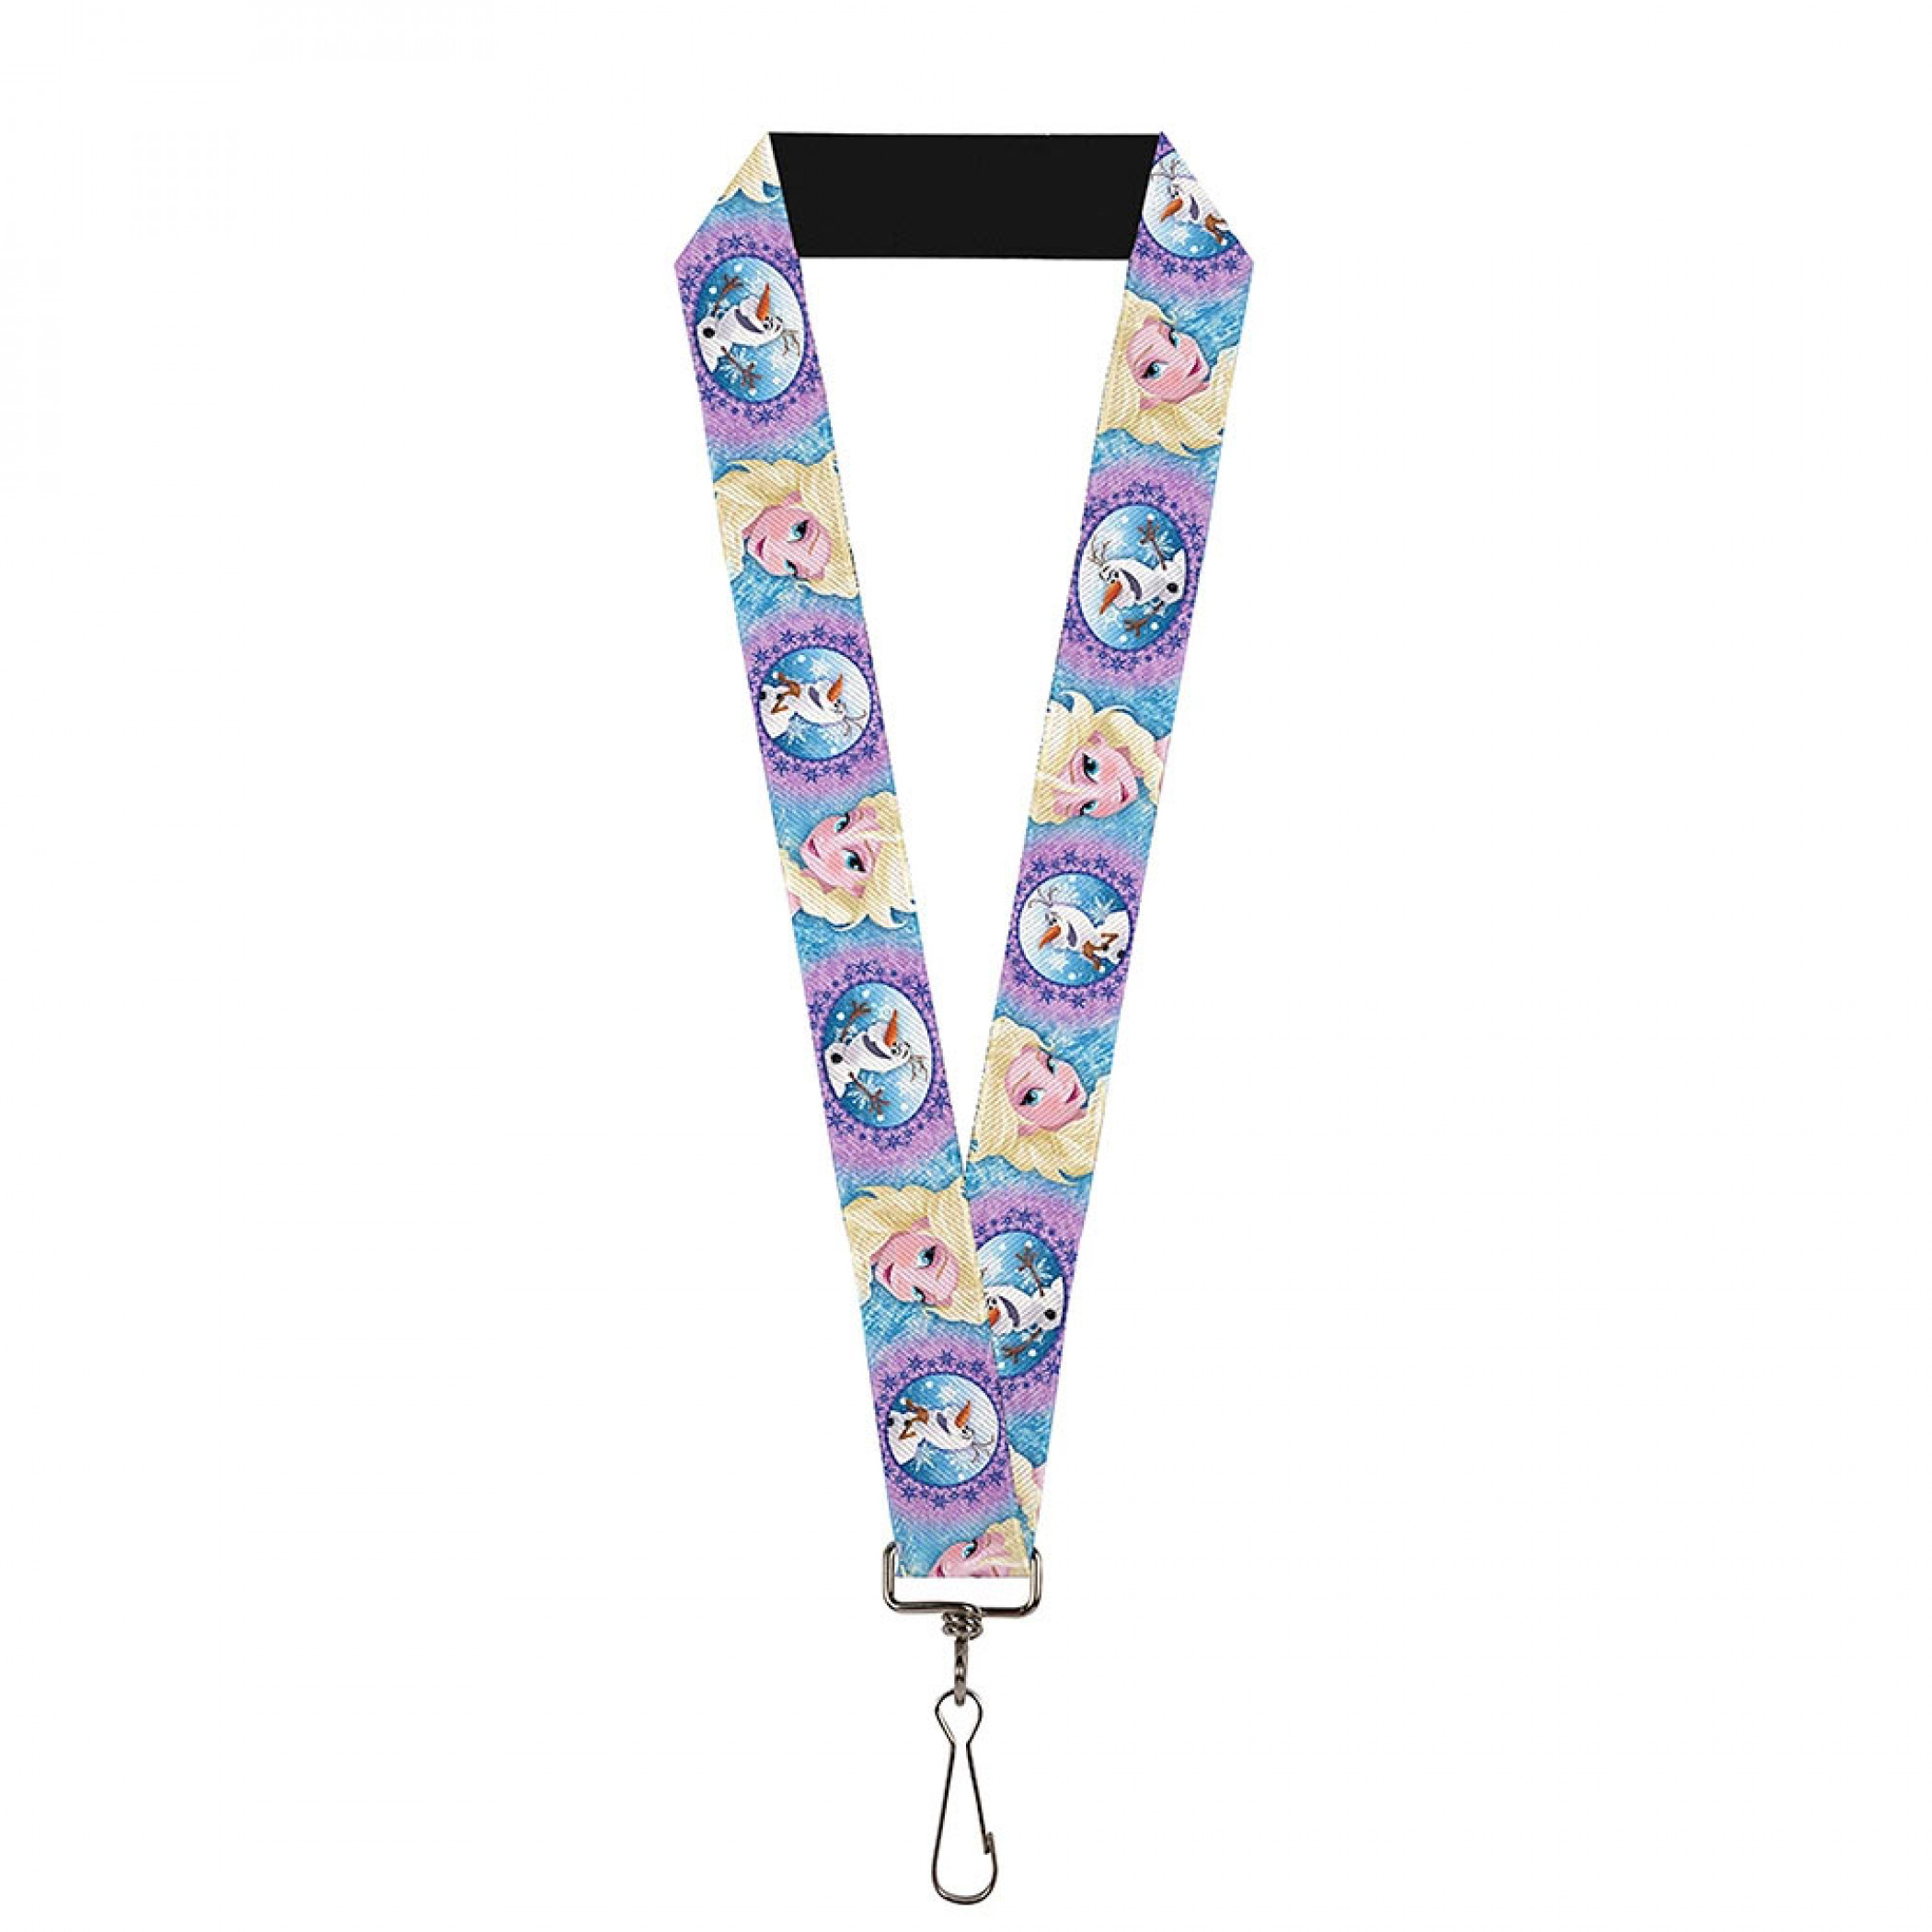 Frozen 2 Elsa and Olaf Lanyard